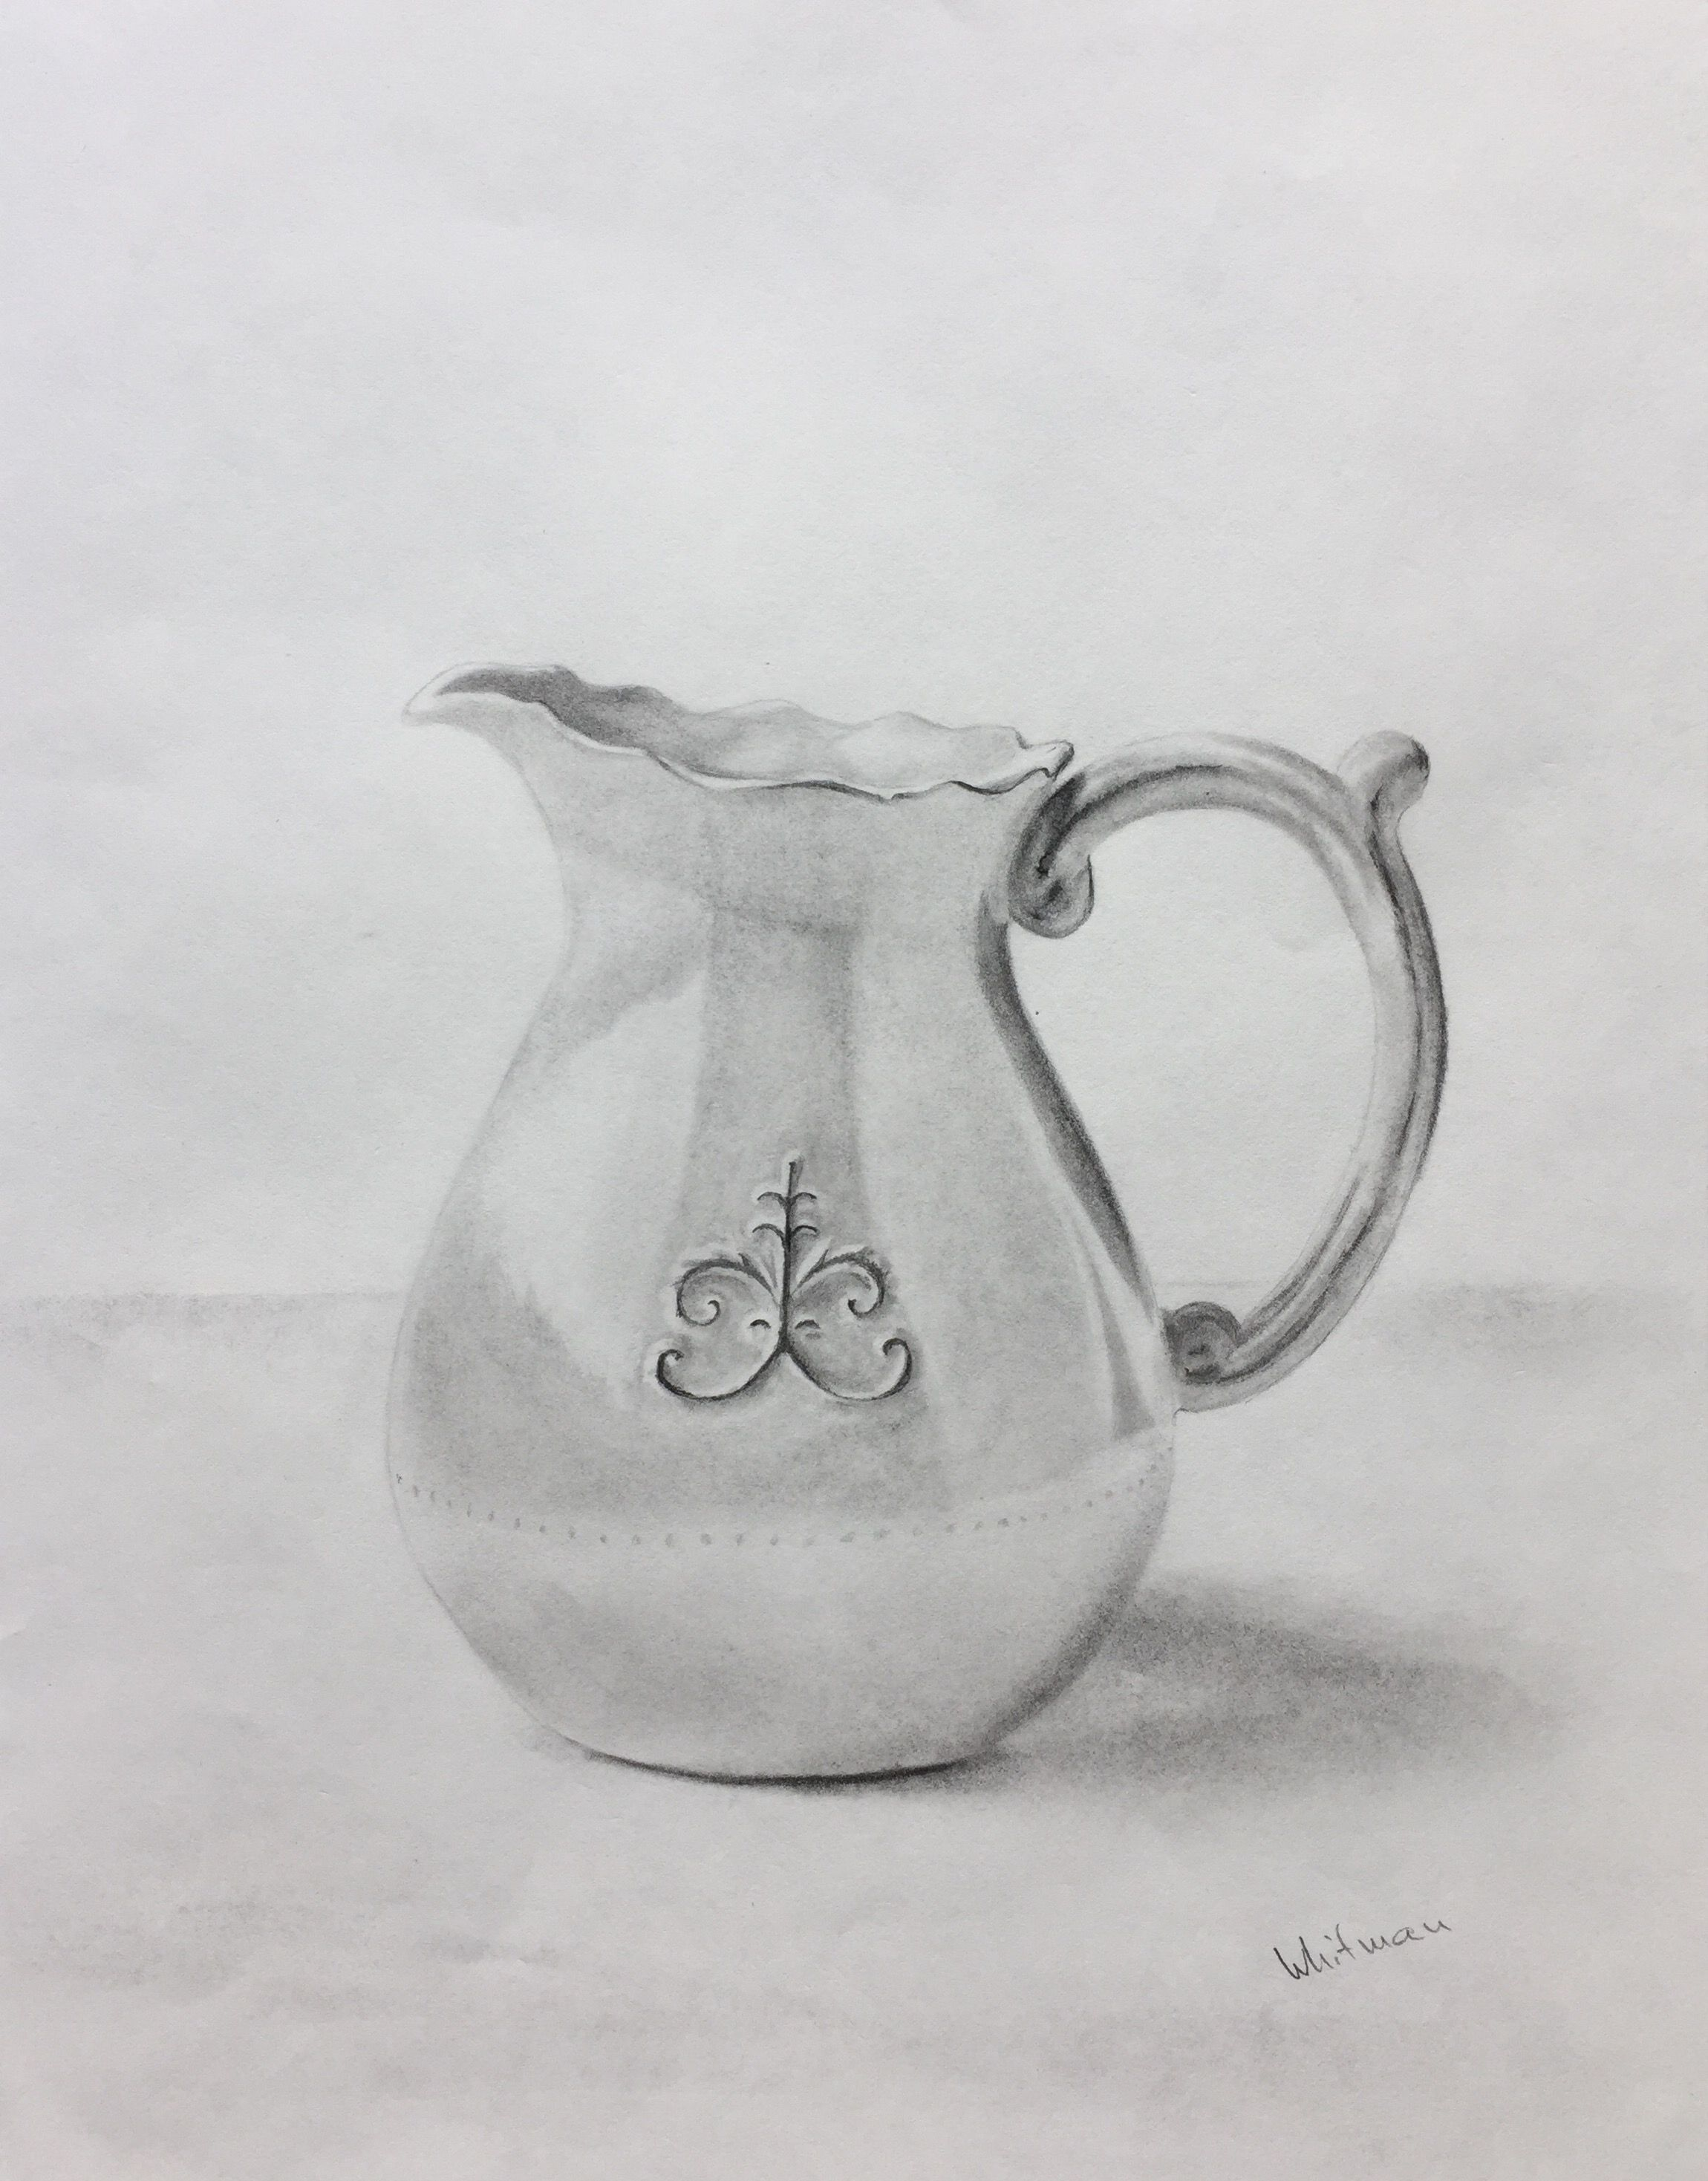 50 milk pitcher sketch original art graphite pencil drawing by elena whitman